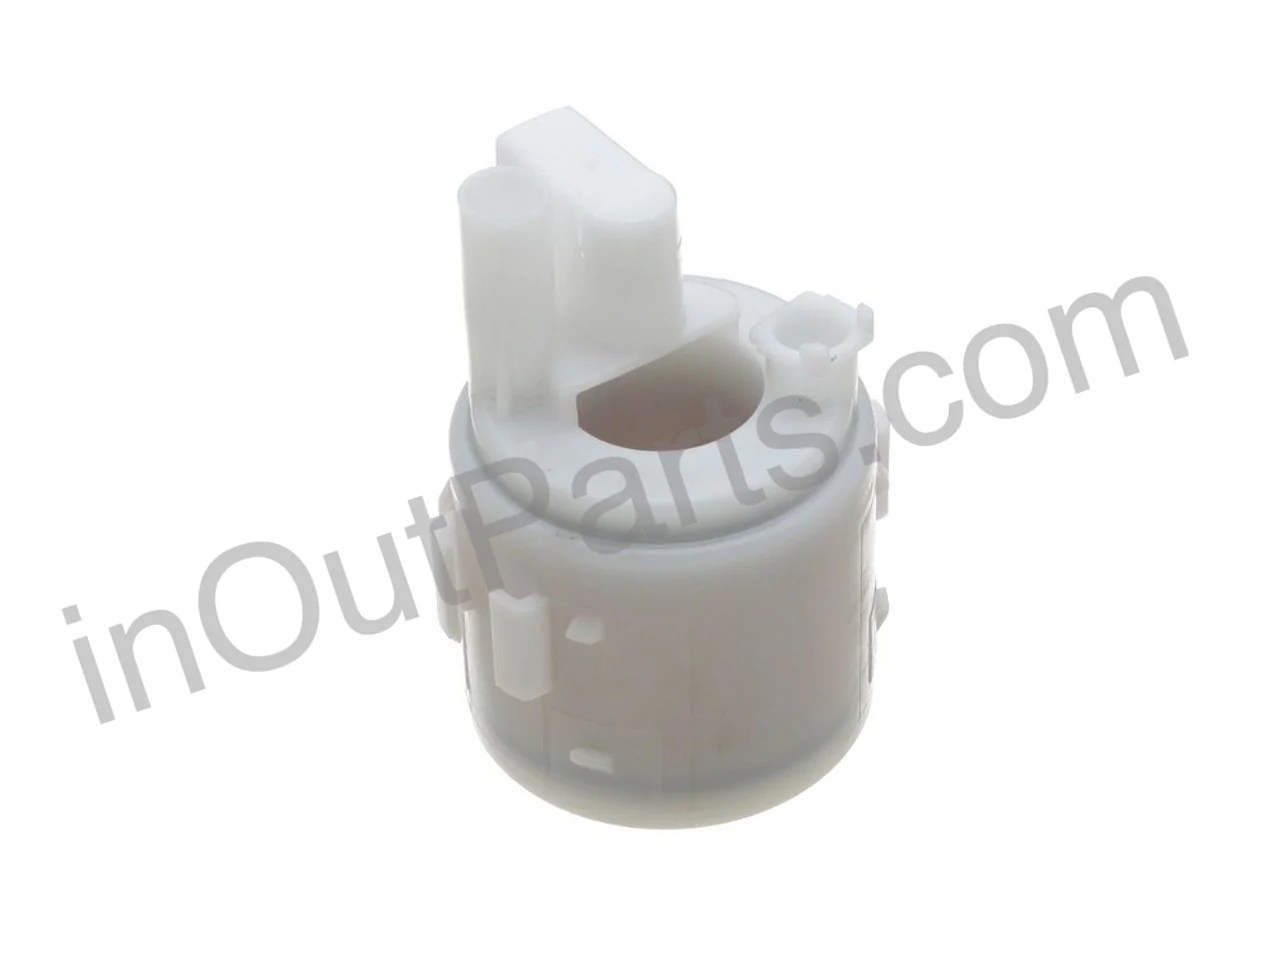 small resolution of fuel filter fits nissan x trail 2000 2001 2002 2003 2004 2005 2006 2 inout parts